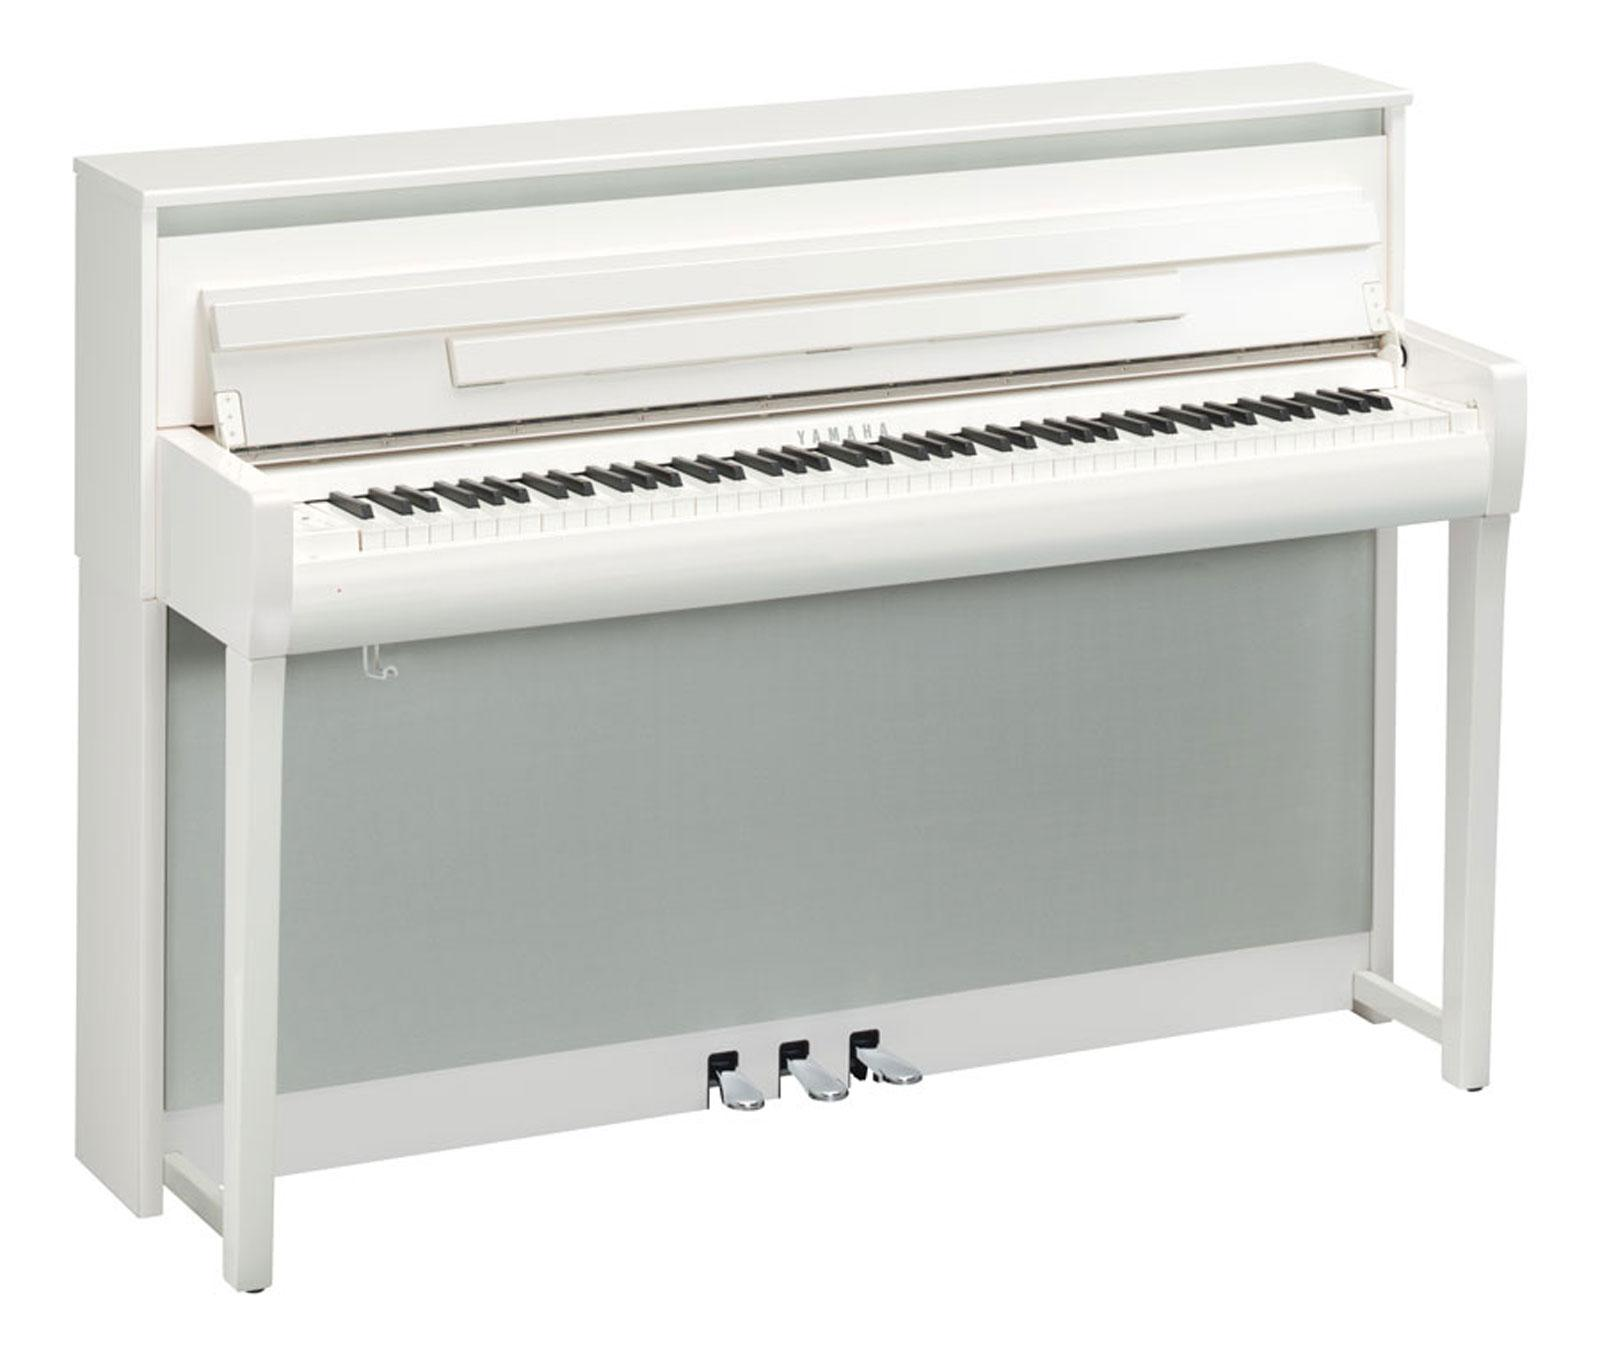 yamaha clp 685 pwh digitalpiano wei hochglanz. Black Bedroom Furniture Sets. Home Design Ideas